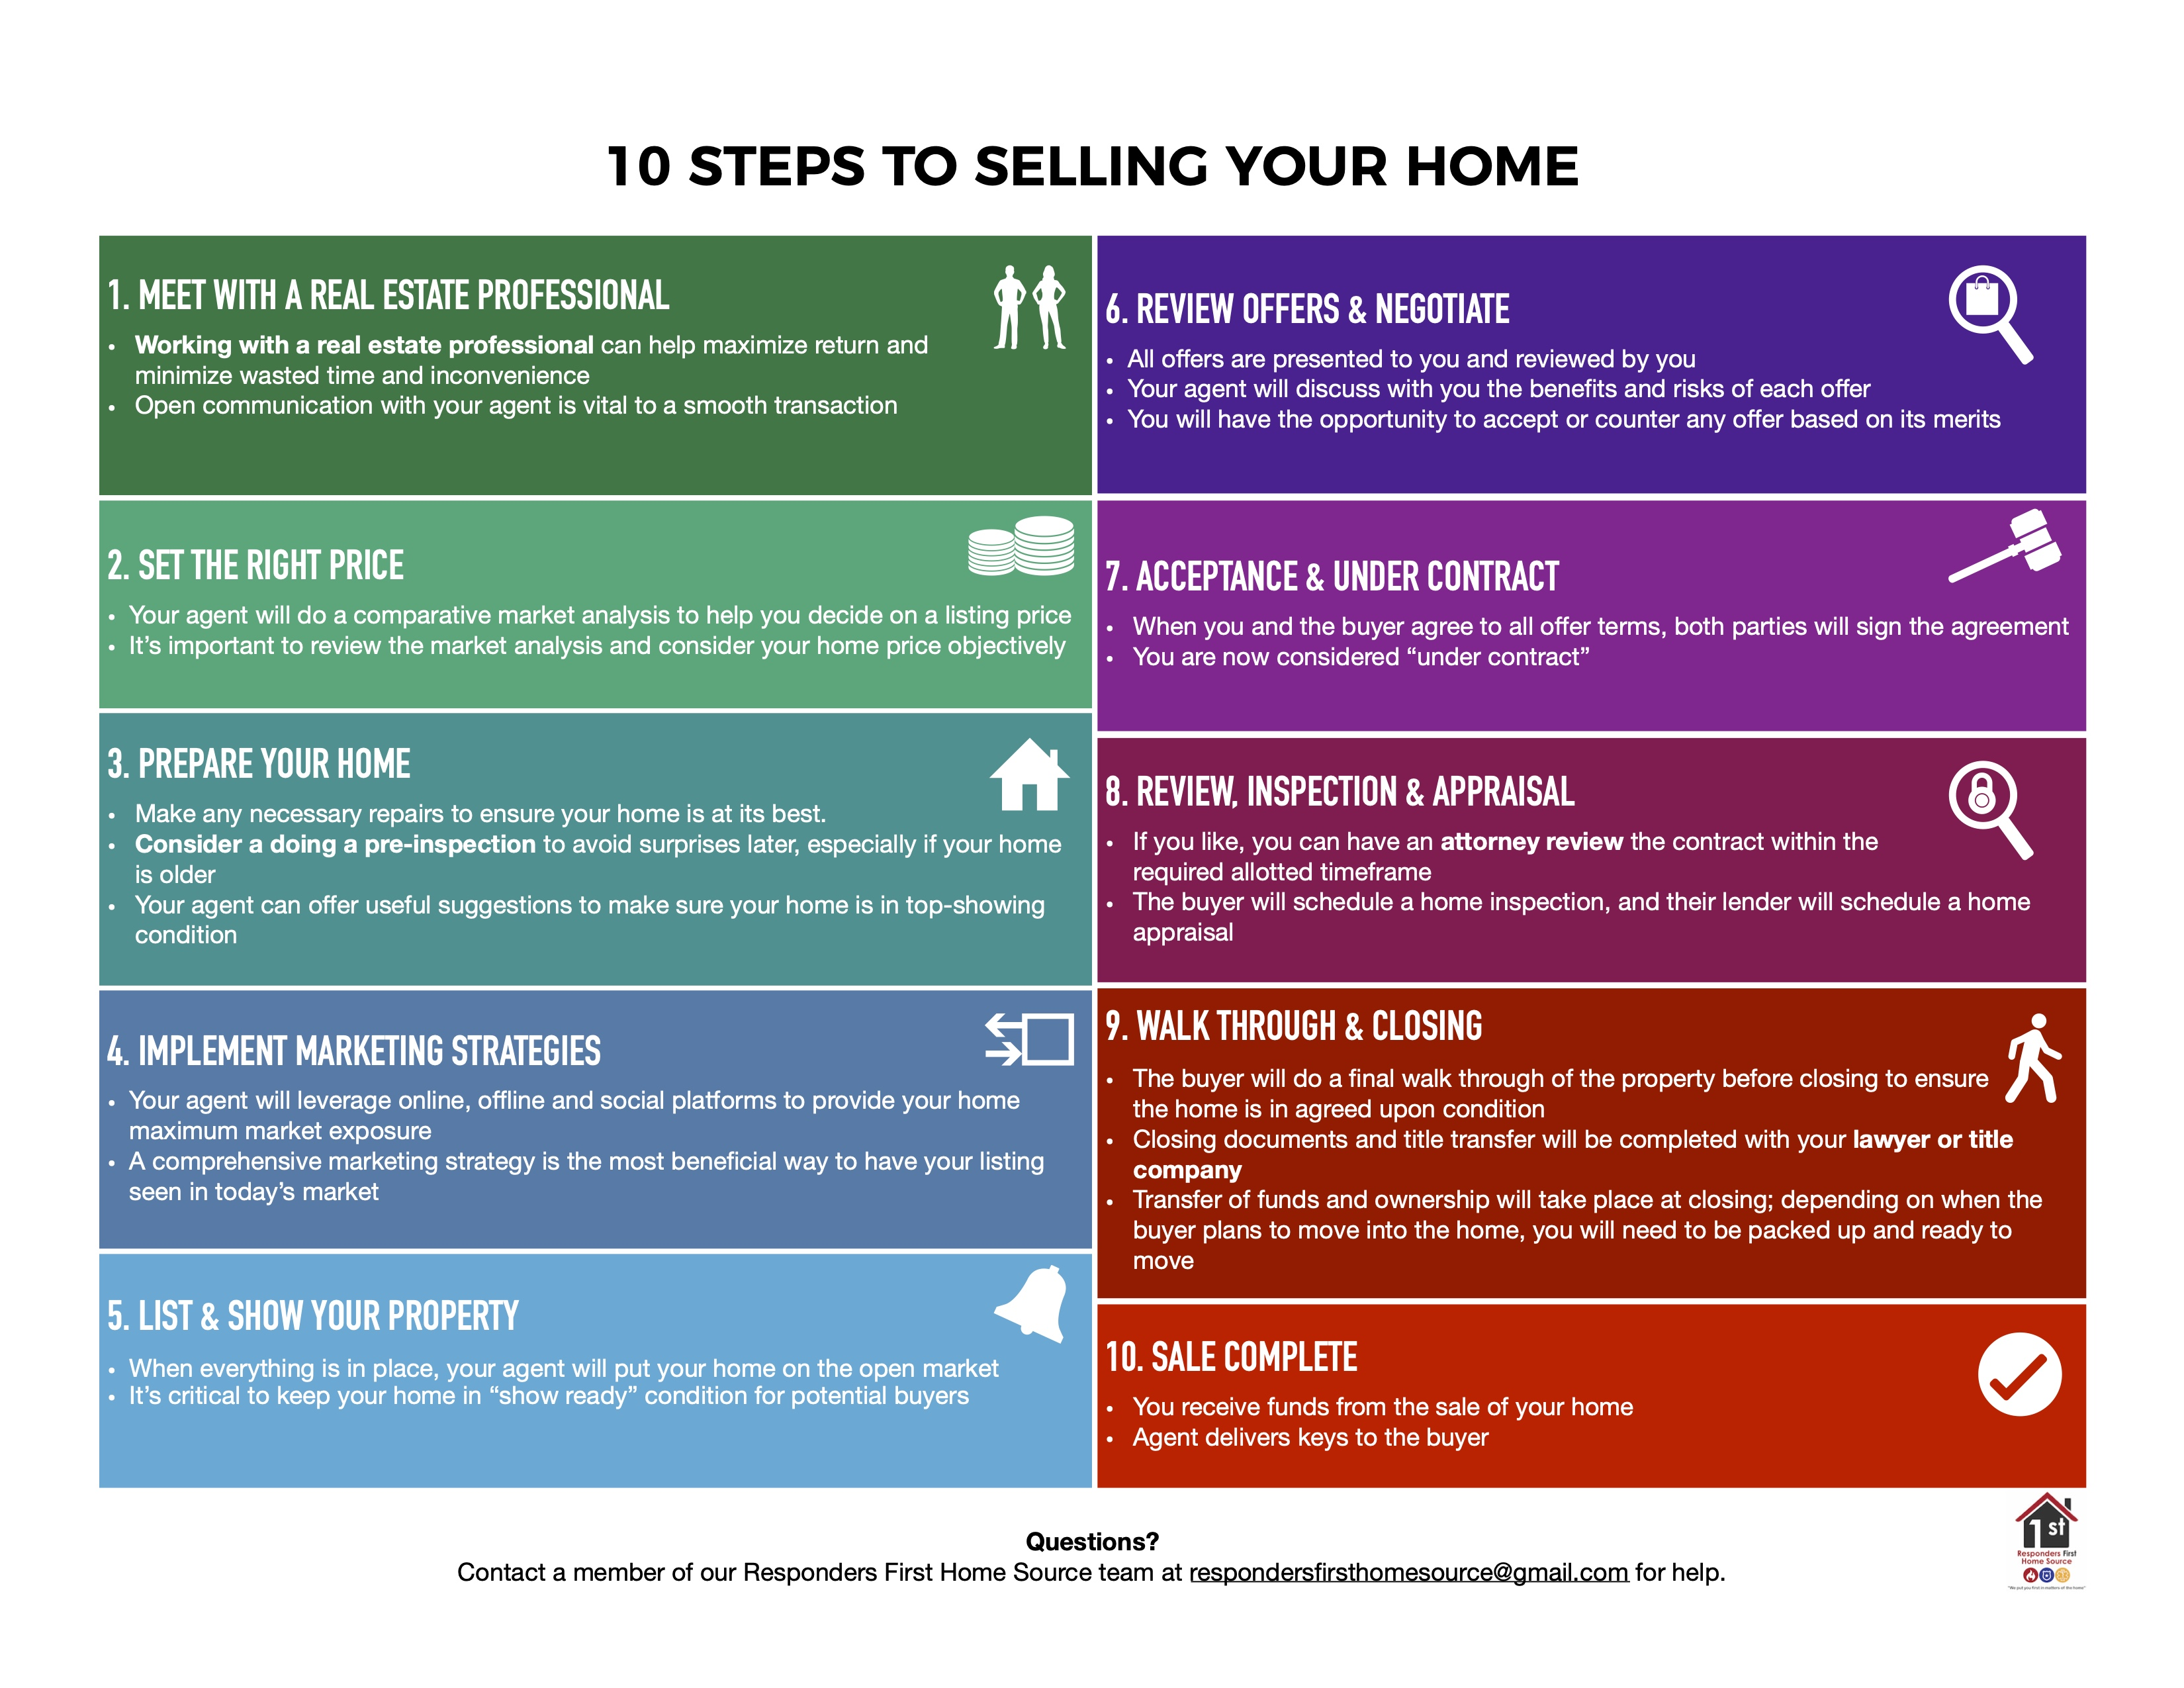 Home Buying & Home Selling Process Tool - Part 2